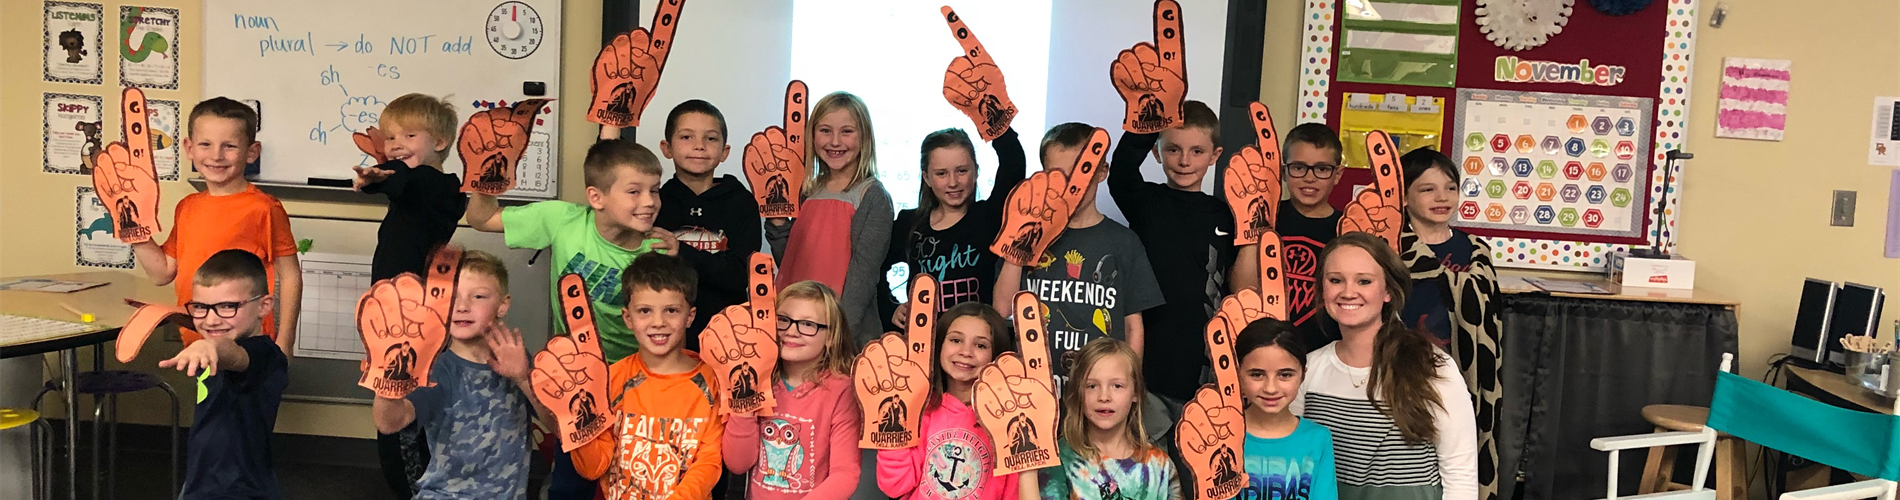 Grade 2He celebrates their Quarrier Pride in support of the football State Championship on Nov. 8.